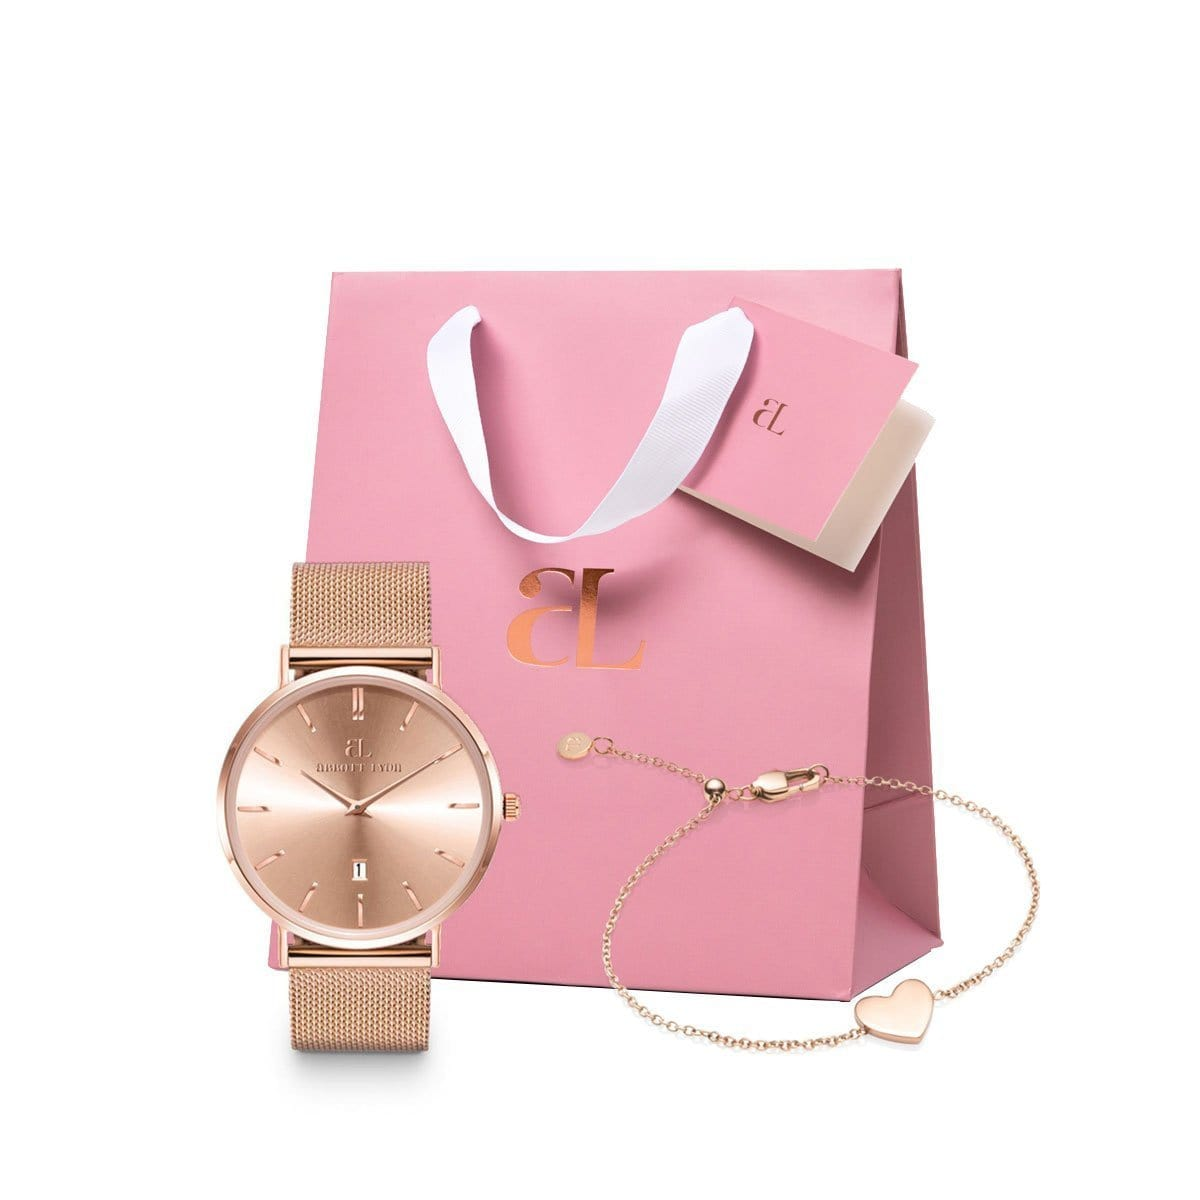 The Rose Gold Chain Stellar 40 Heart Little Luxe Gift Set (Rose/Rose)